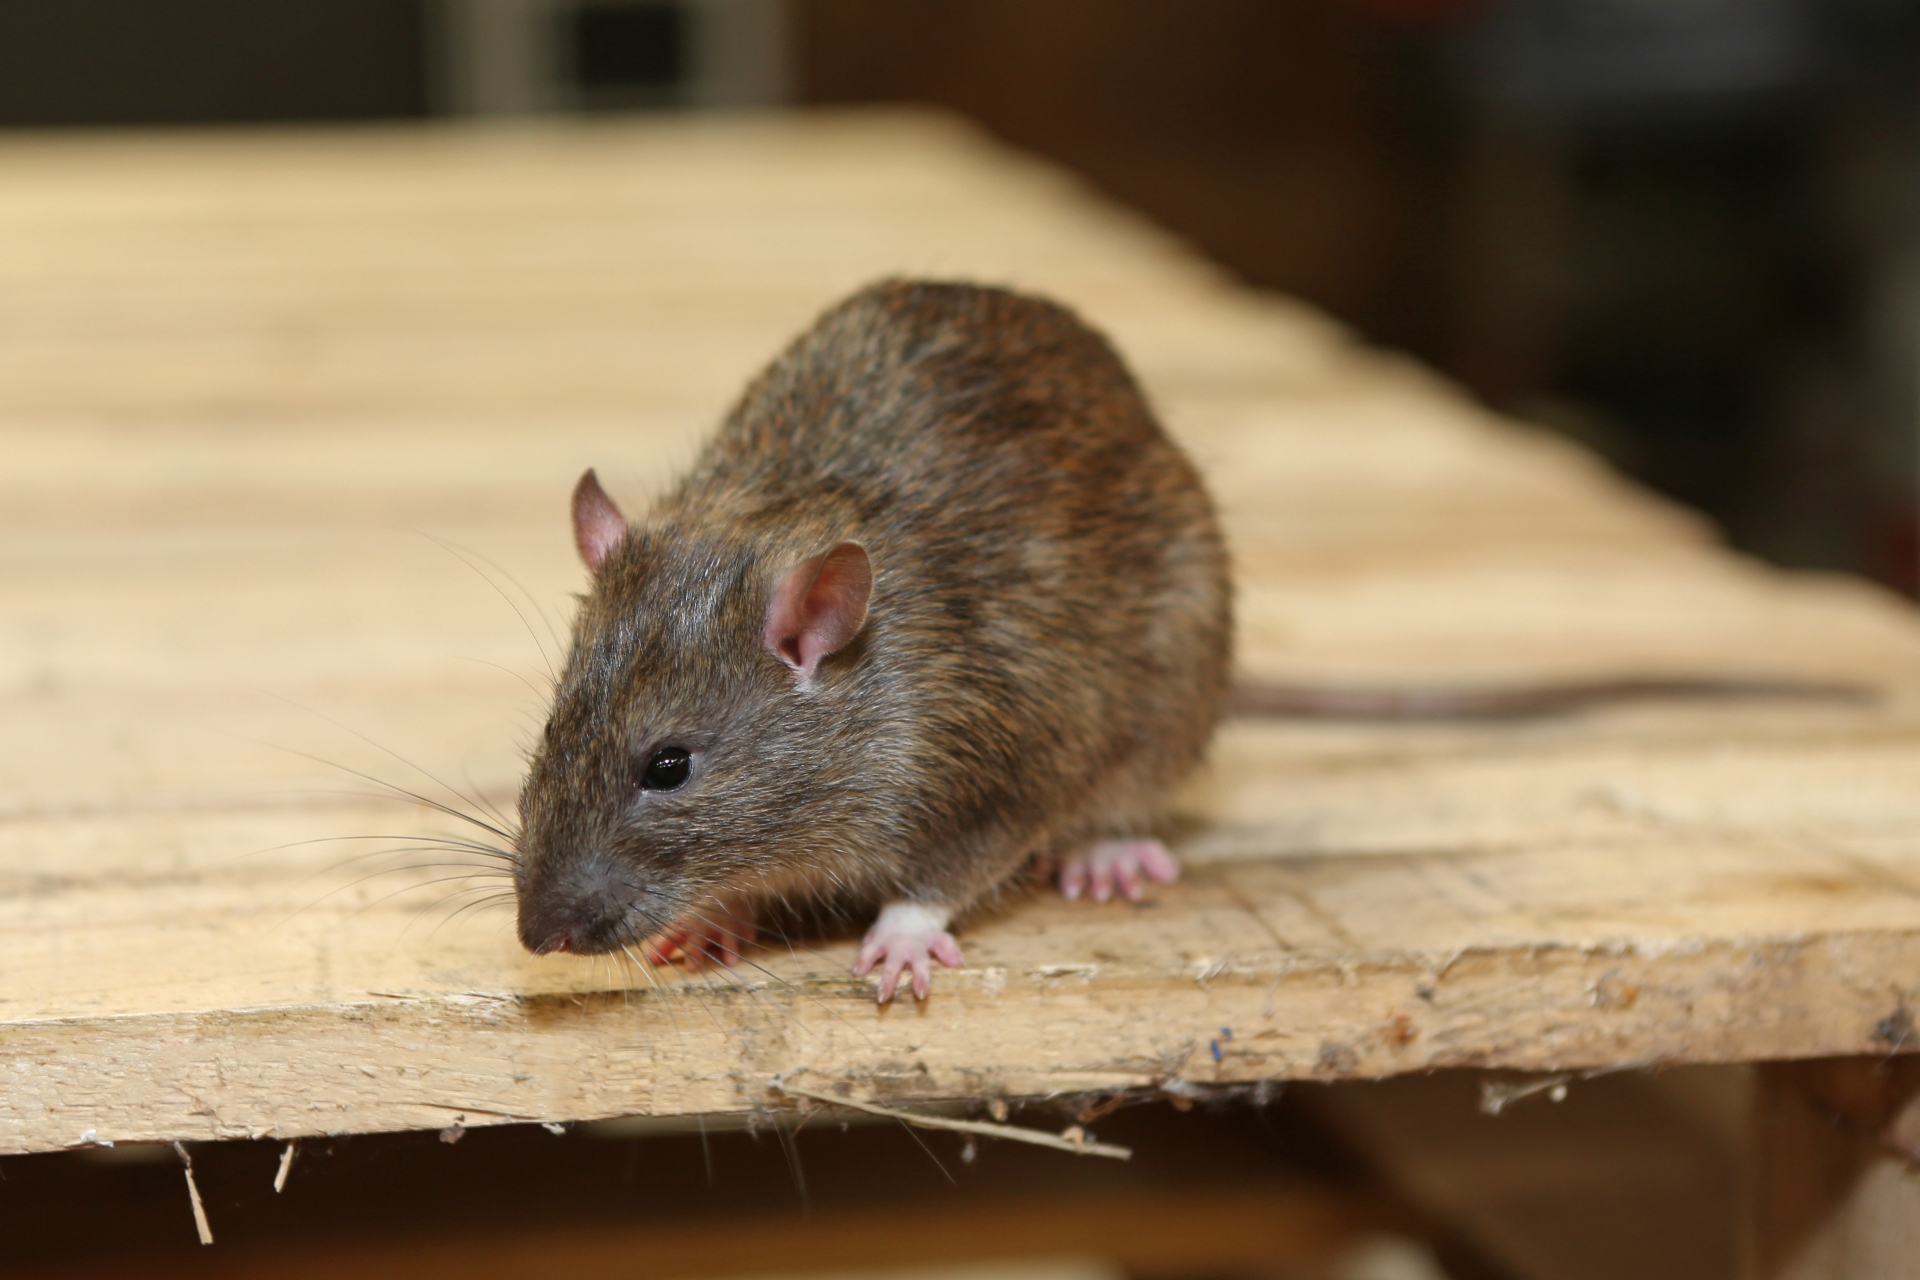 Rat extermination, Pest Control in Hounslow West, Hounslow Heath, Cranford, TW4. Call Now 020 8166 9746